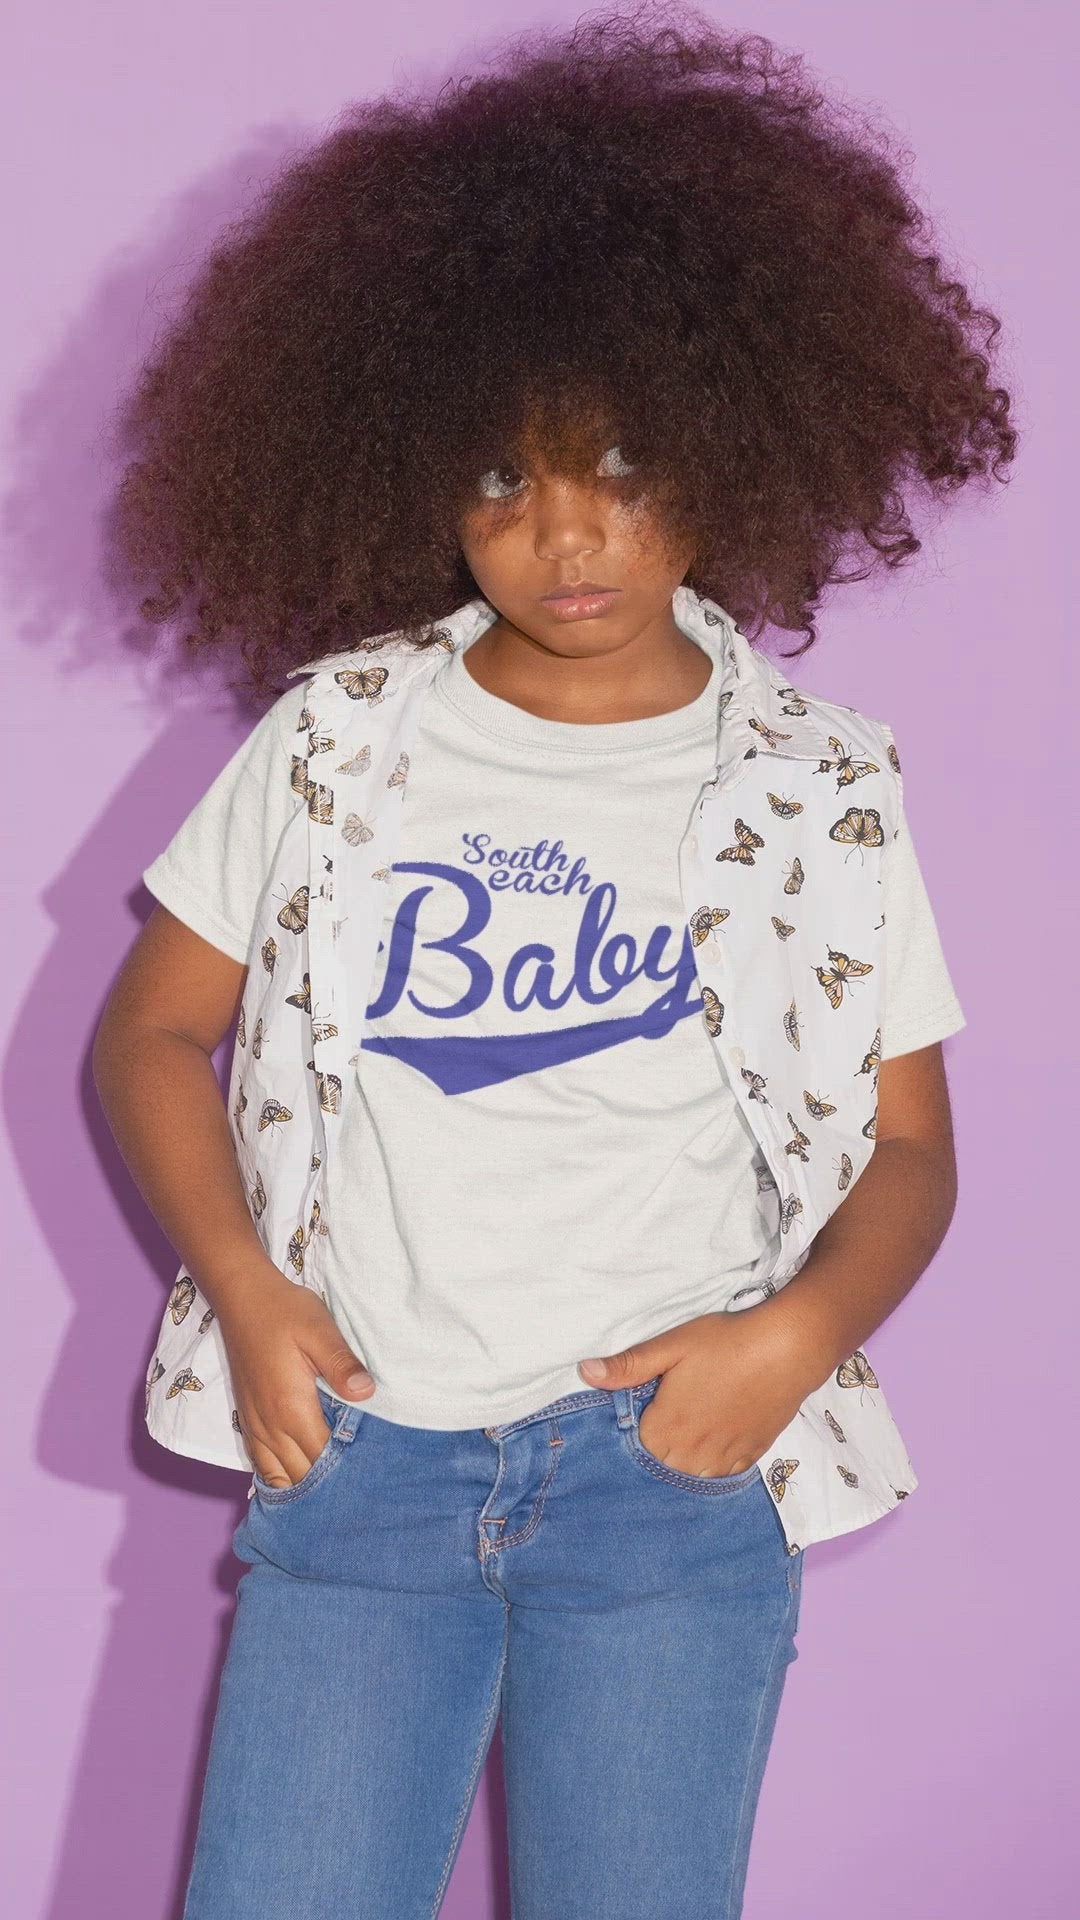 SOUTH BEACH BABY-- Youth Short-Sleeved T-Shirt, Royal Blue Print